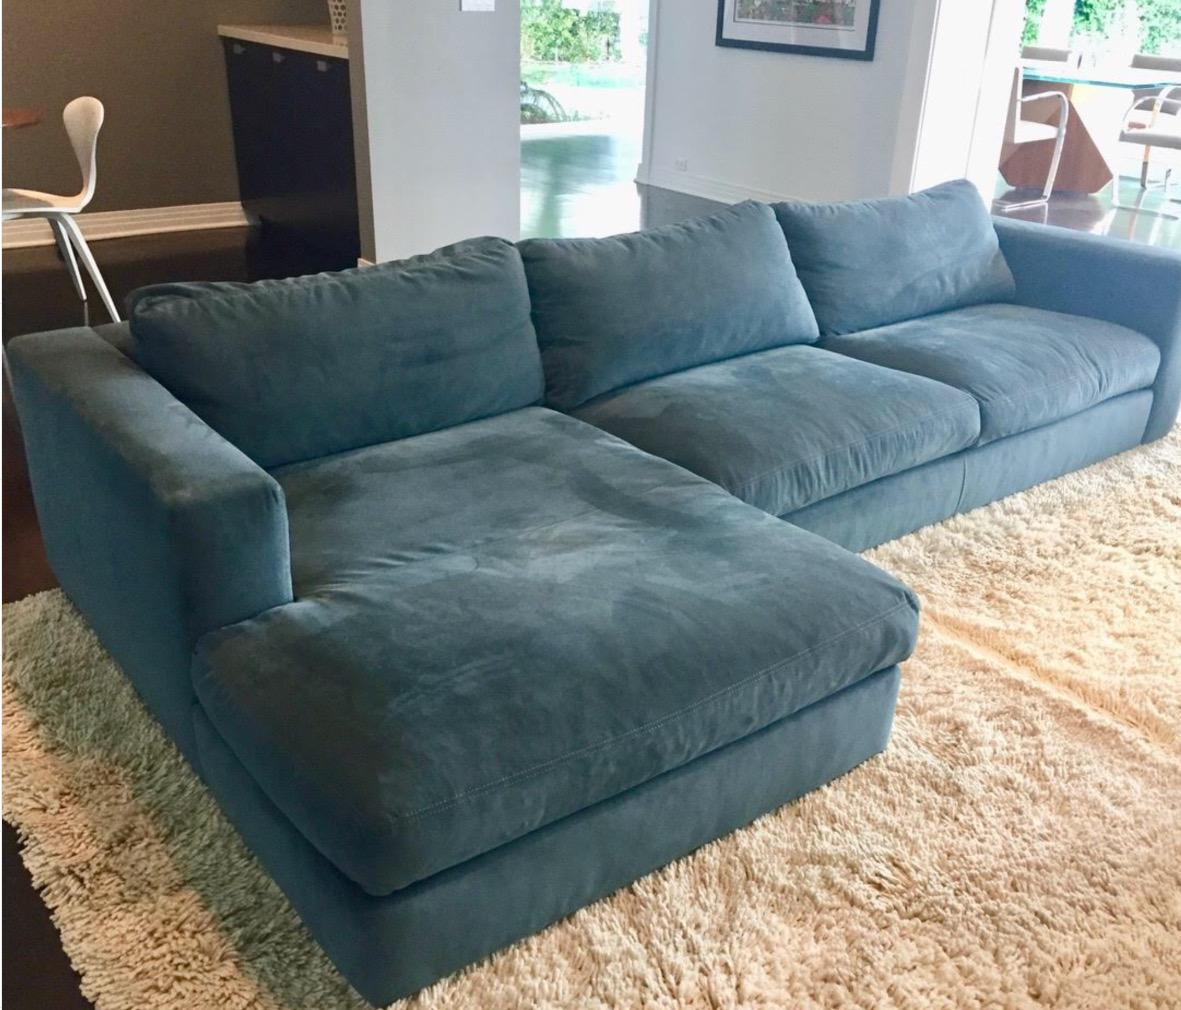 DWR Reid Sectional Chaise With Matching Ottoman   Image 3 Of 9